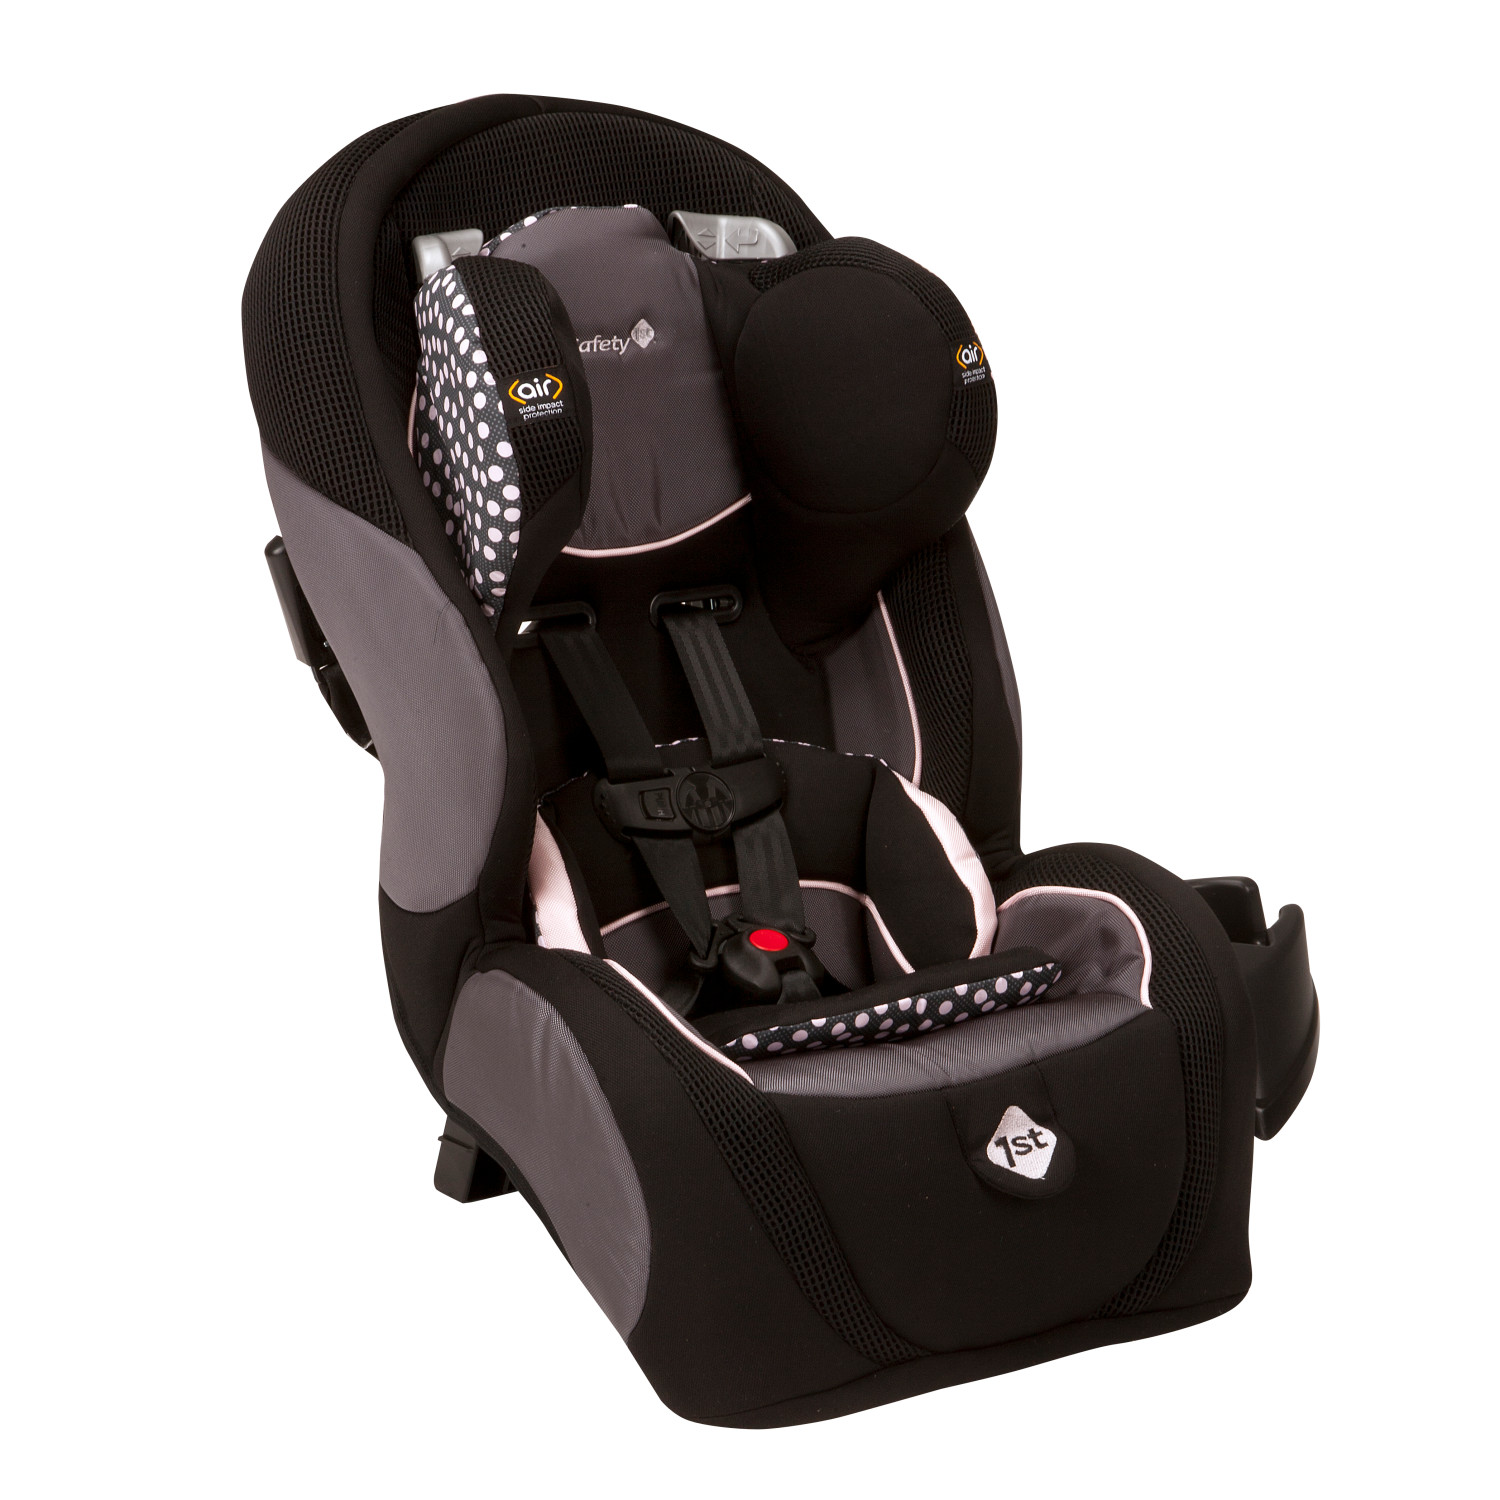 Safety-1st-Complete-Air-65-Convertible-Car-Seat thumbnail 34